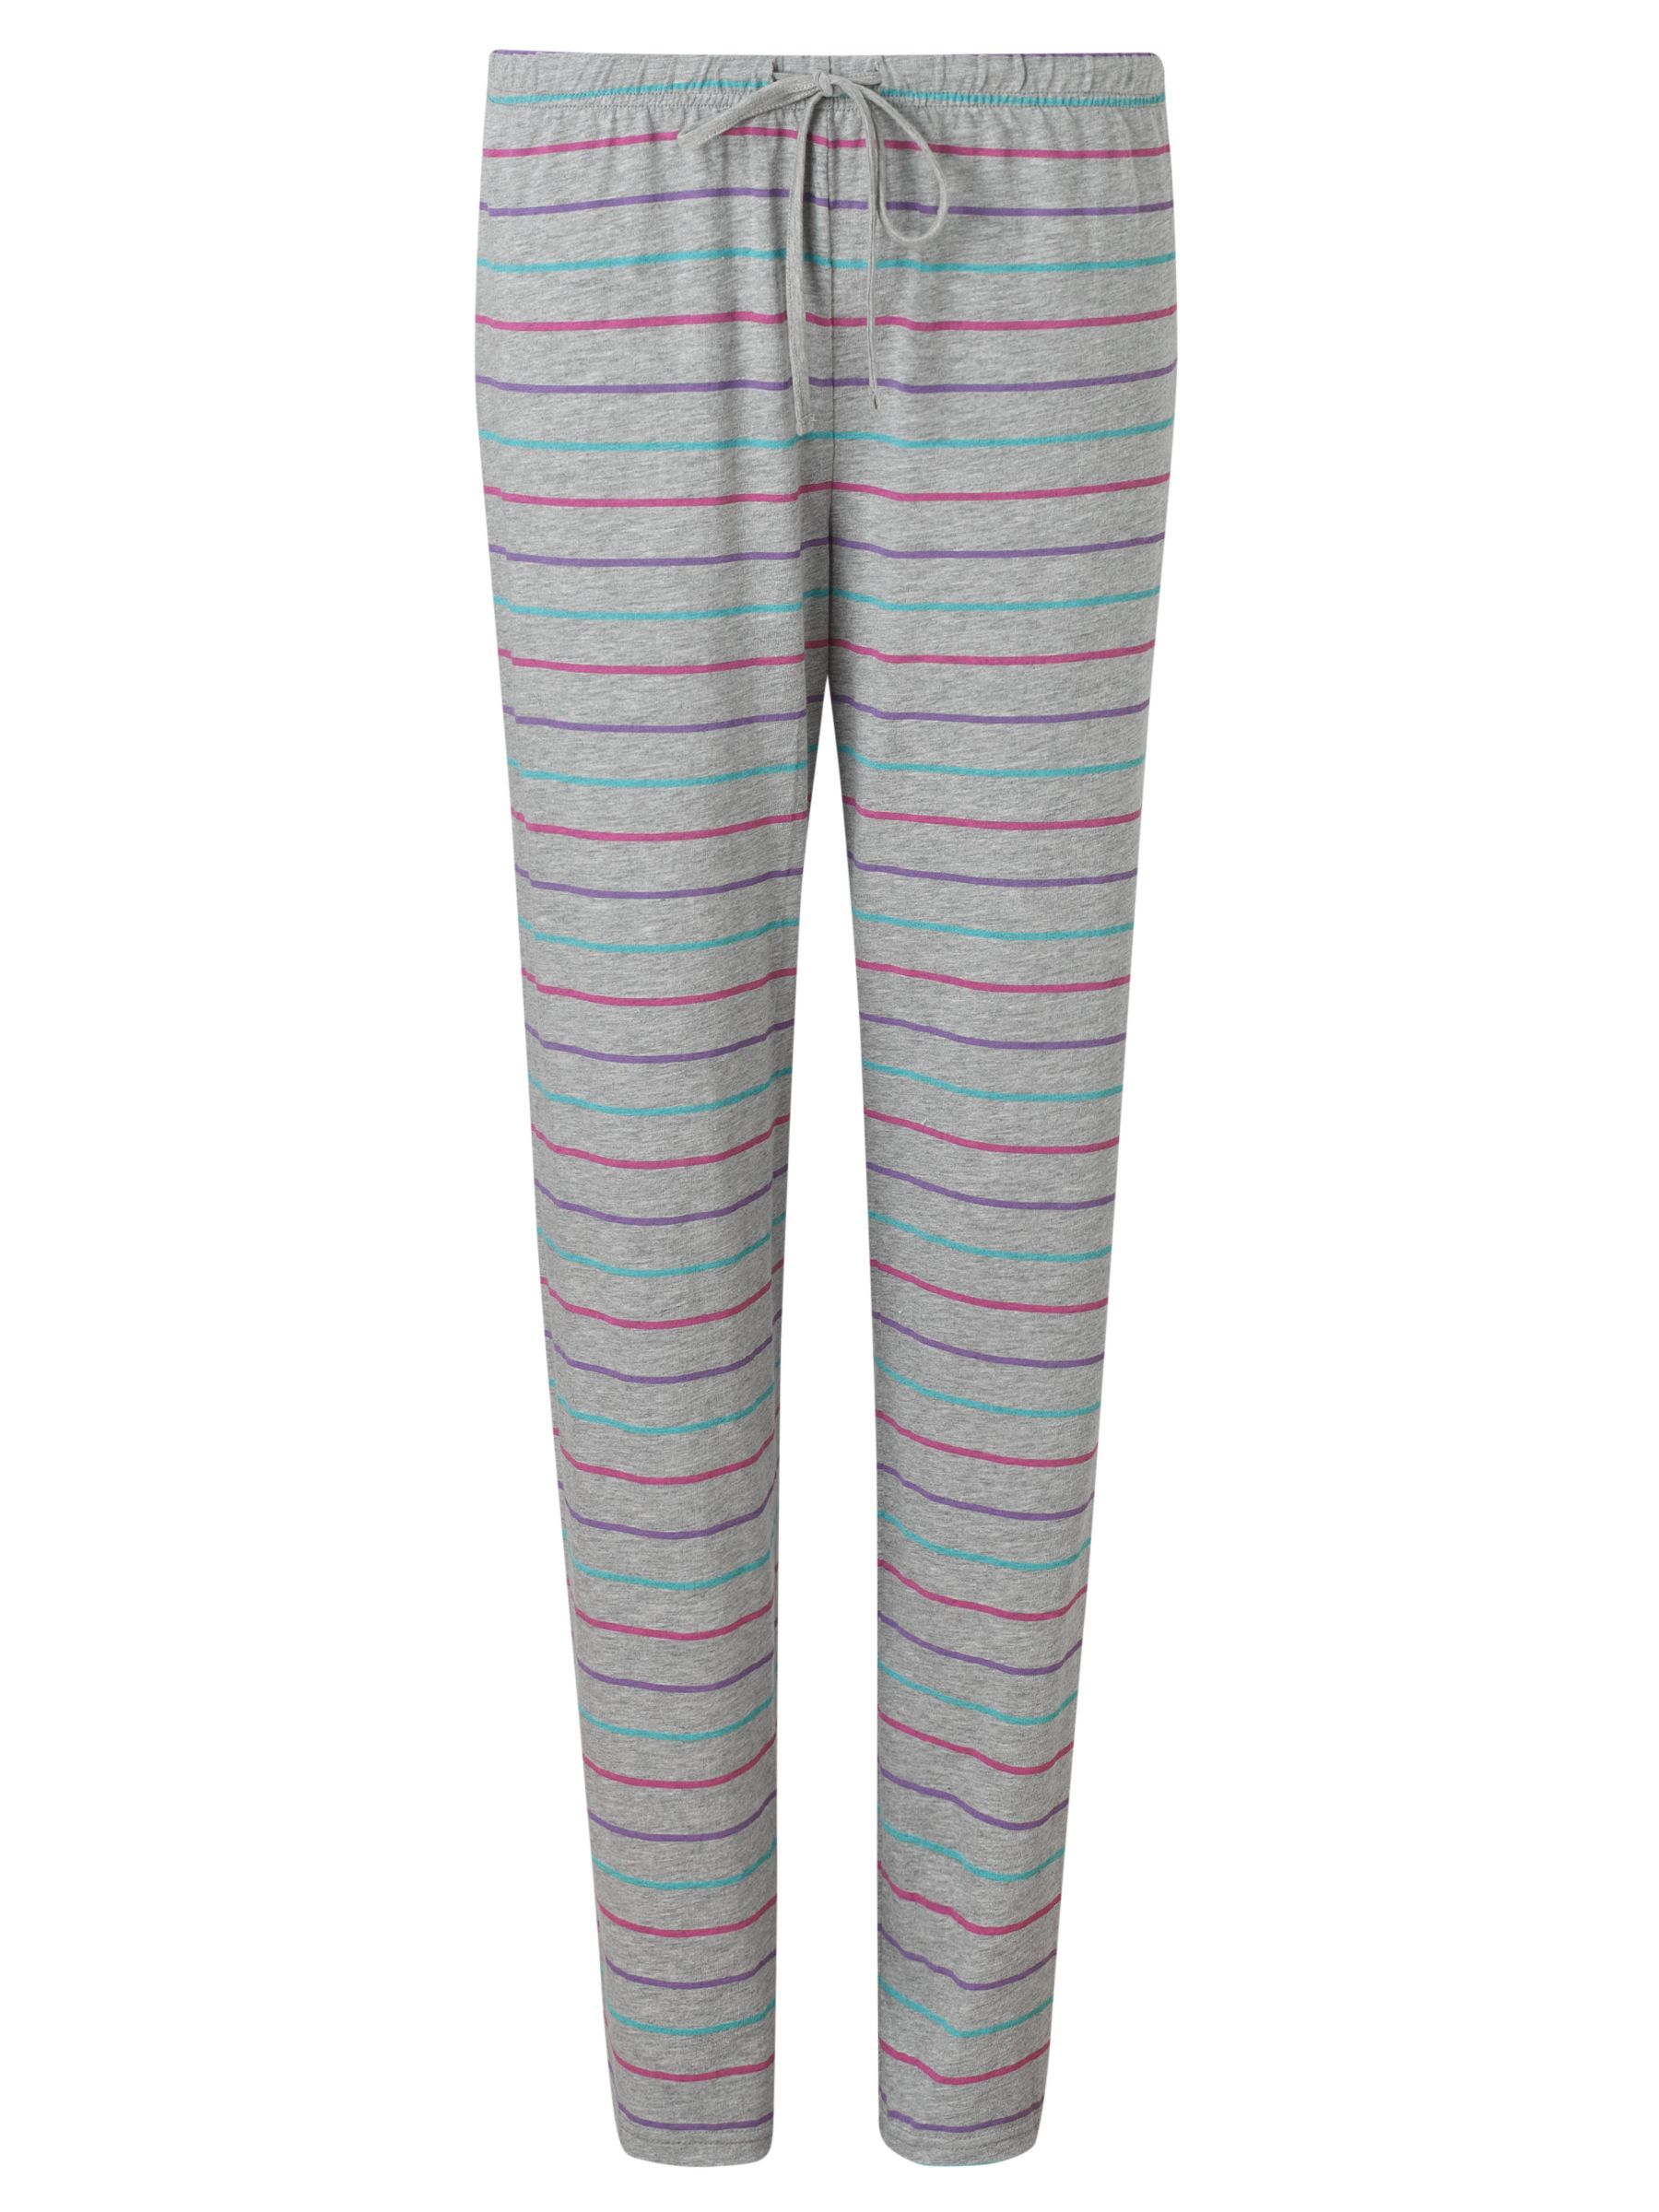 John Lewis Multi Stripe Pyjama Pants, Grey / Multi